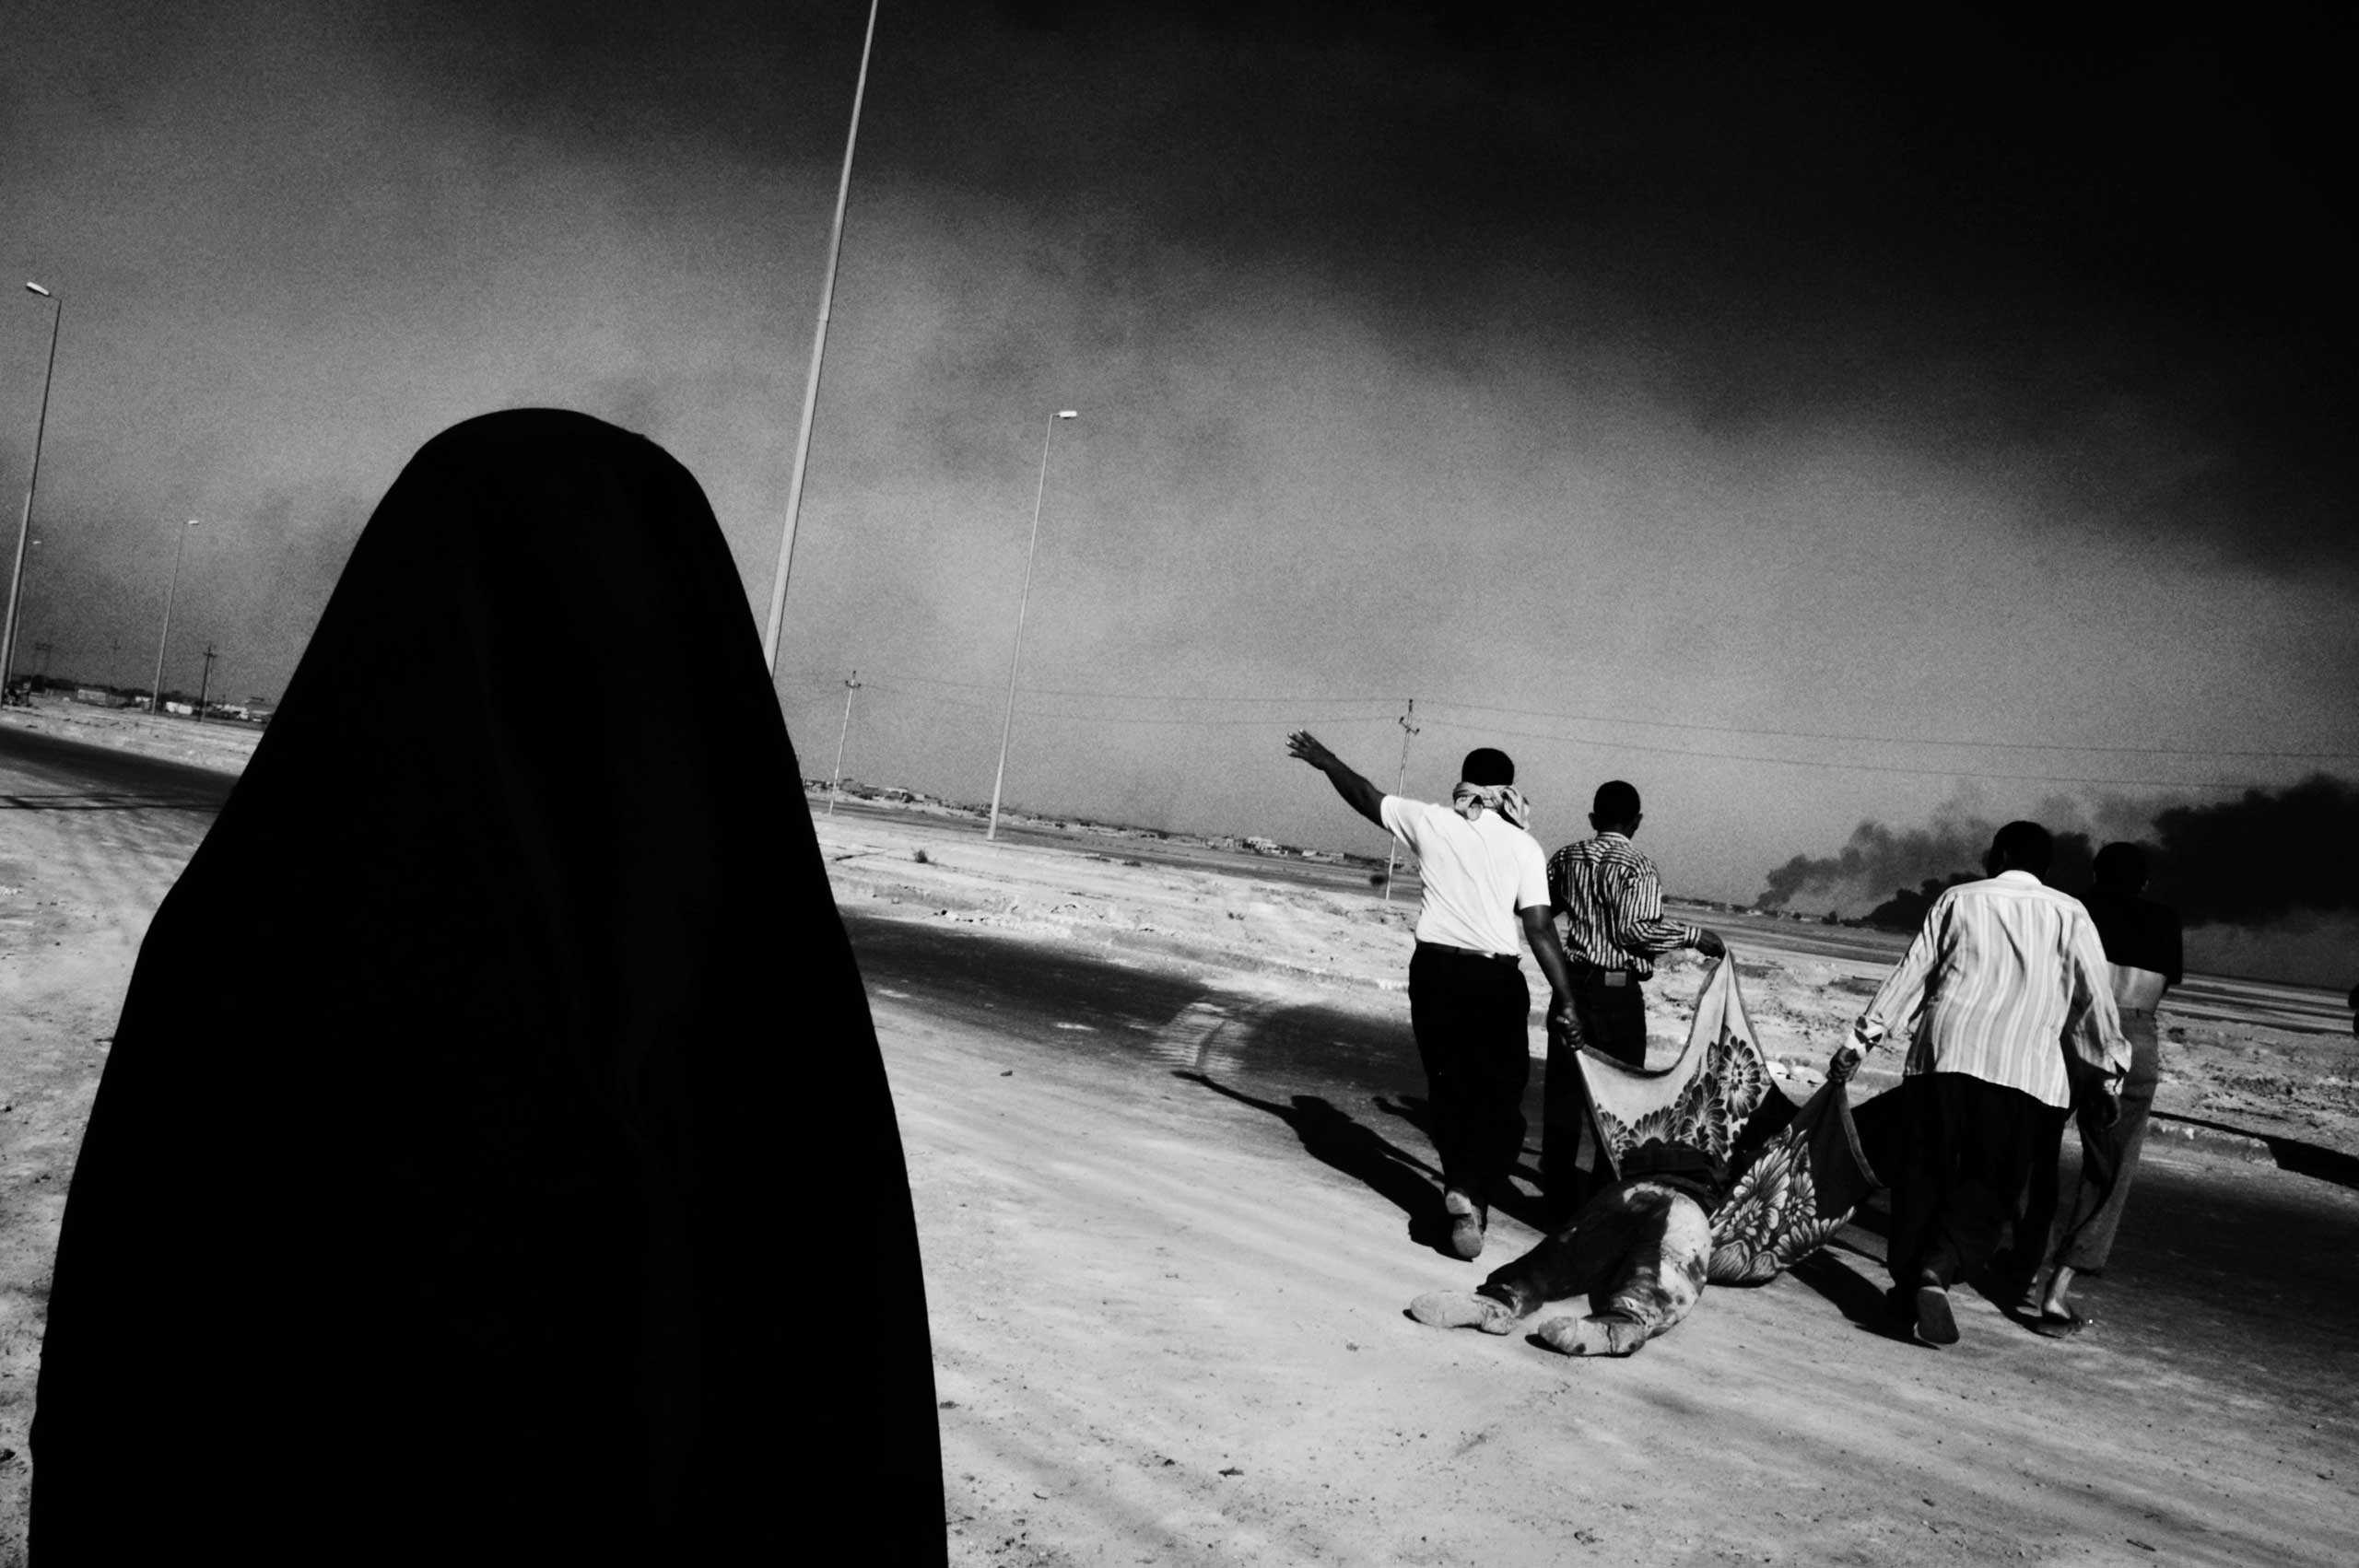 <b>Paolo Pellegrin, March 4, 2003                                   </b>                                   I entered Iraq unembedded with a car I had rented in Kuwait, stopping to photograph the fighting in Basra, a city in the South on the highway to Baghdad. The picture was taken near some sort of compound where there had been fighting between pro-Saddam fighters and British forces. There were several bodies of Iraqi fighters lying around. At one point, people started to appear on the streets to drag away particular bodies. As I understand, the woman in the foreground of the photograph was the mother of the deceased. They dragged him from the place he was killed, put him in the trunk of a waiting car, and drove off.                                    When I look at this image ten years later, the first thing that comes to mind is the idea of loss. I see the photograph and think of the mother's loss. If I continue looking, that black veiled figure, in some strange sense, makes me think of death itself - shadowy and dark.